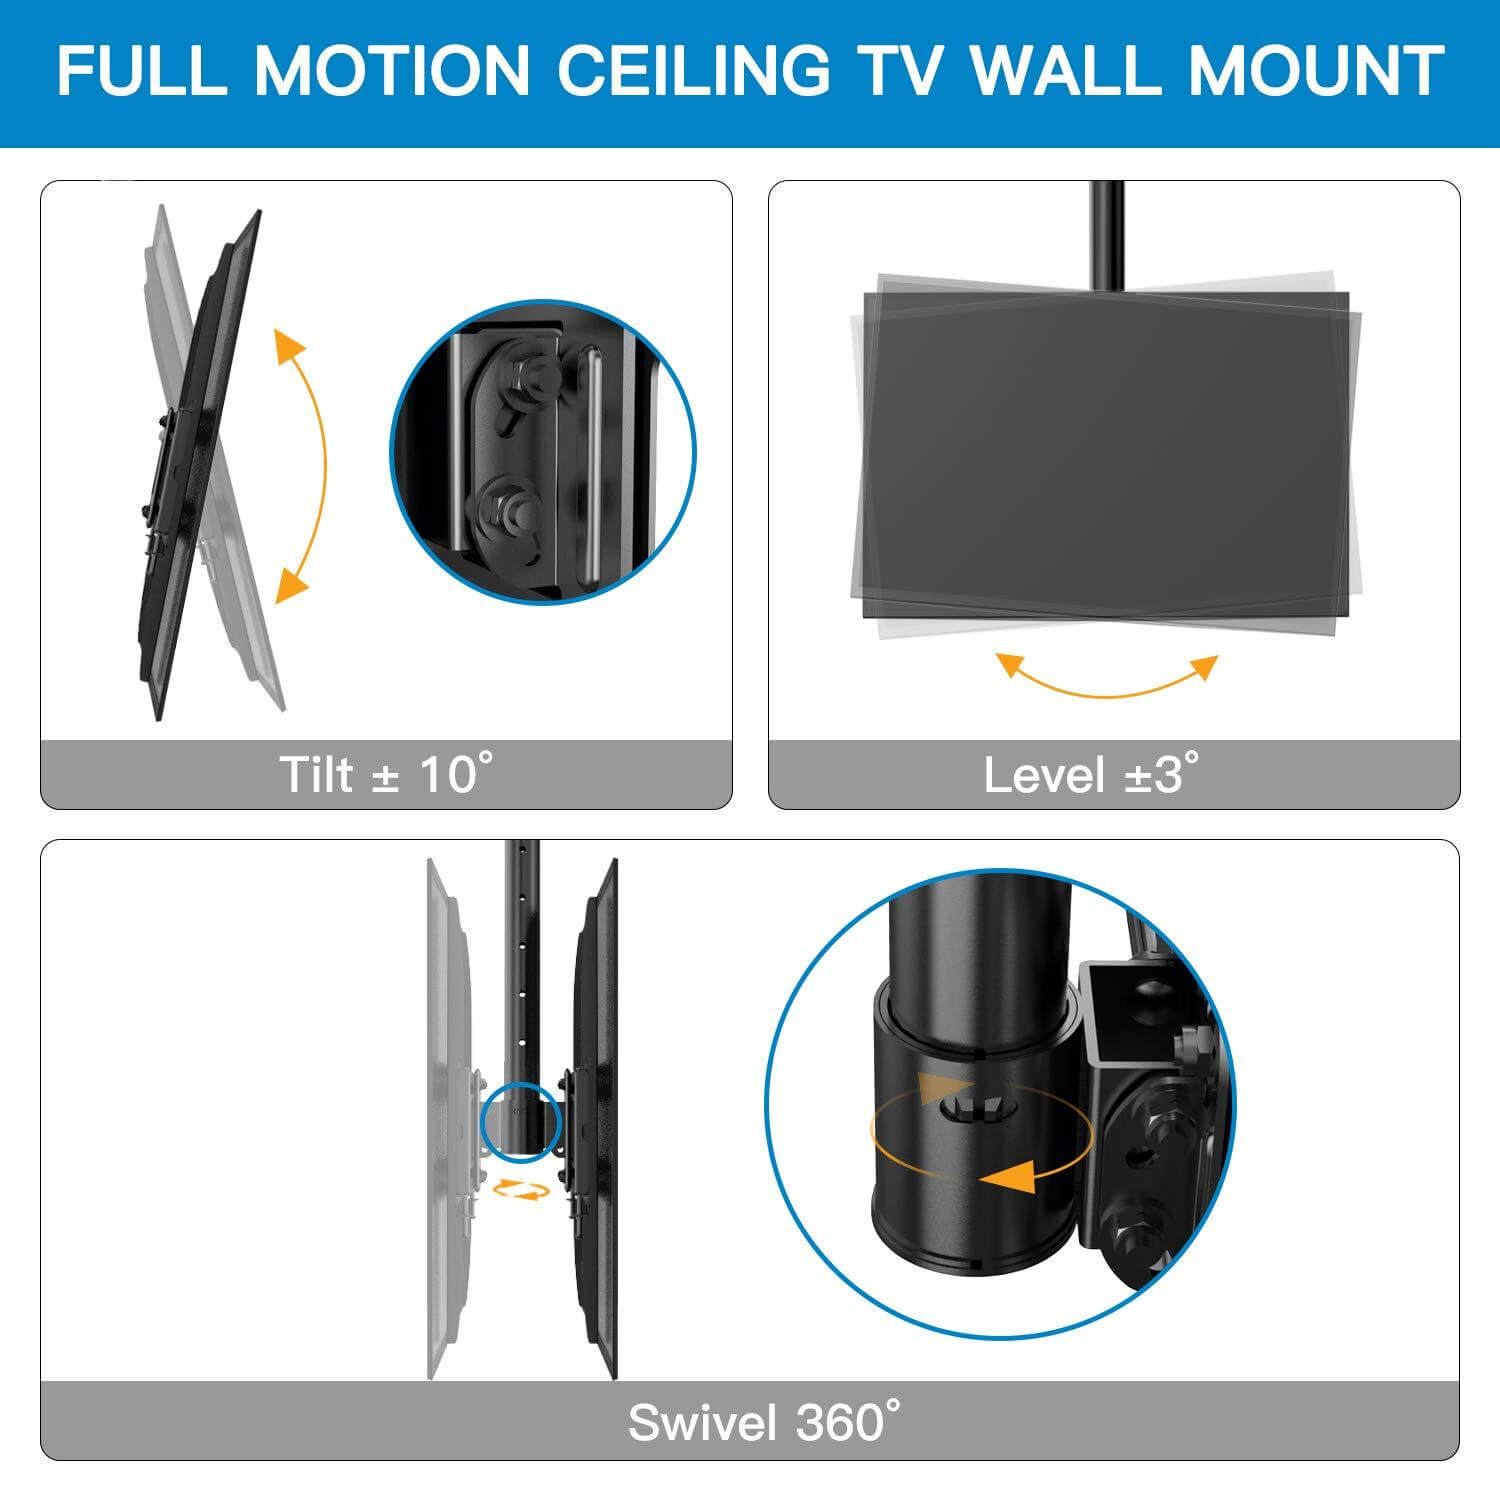 Ceiling TV Wall Mount - Full Rotation and Tilt